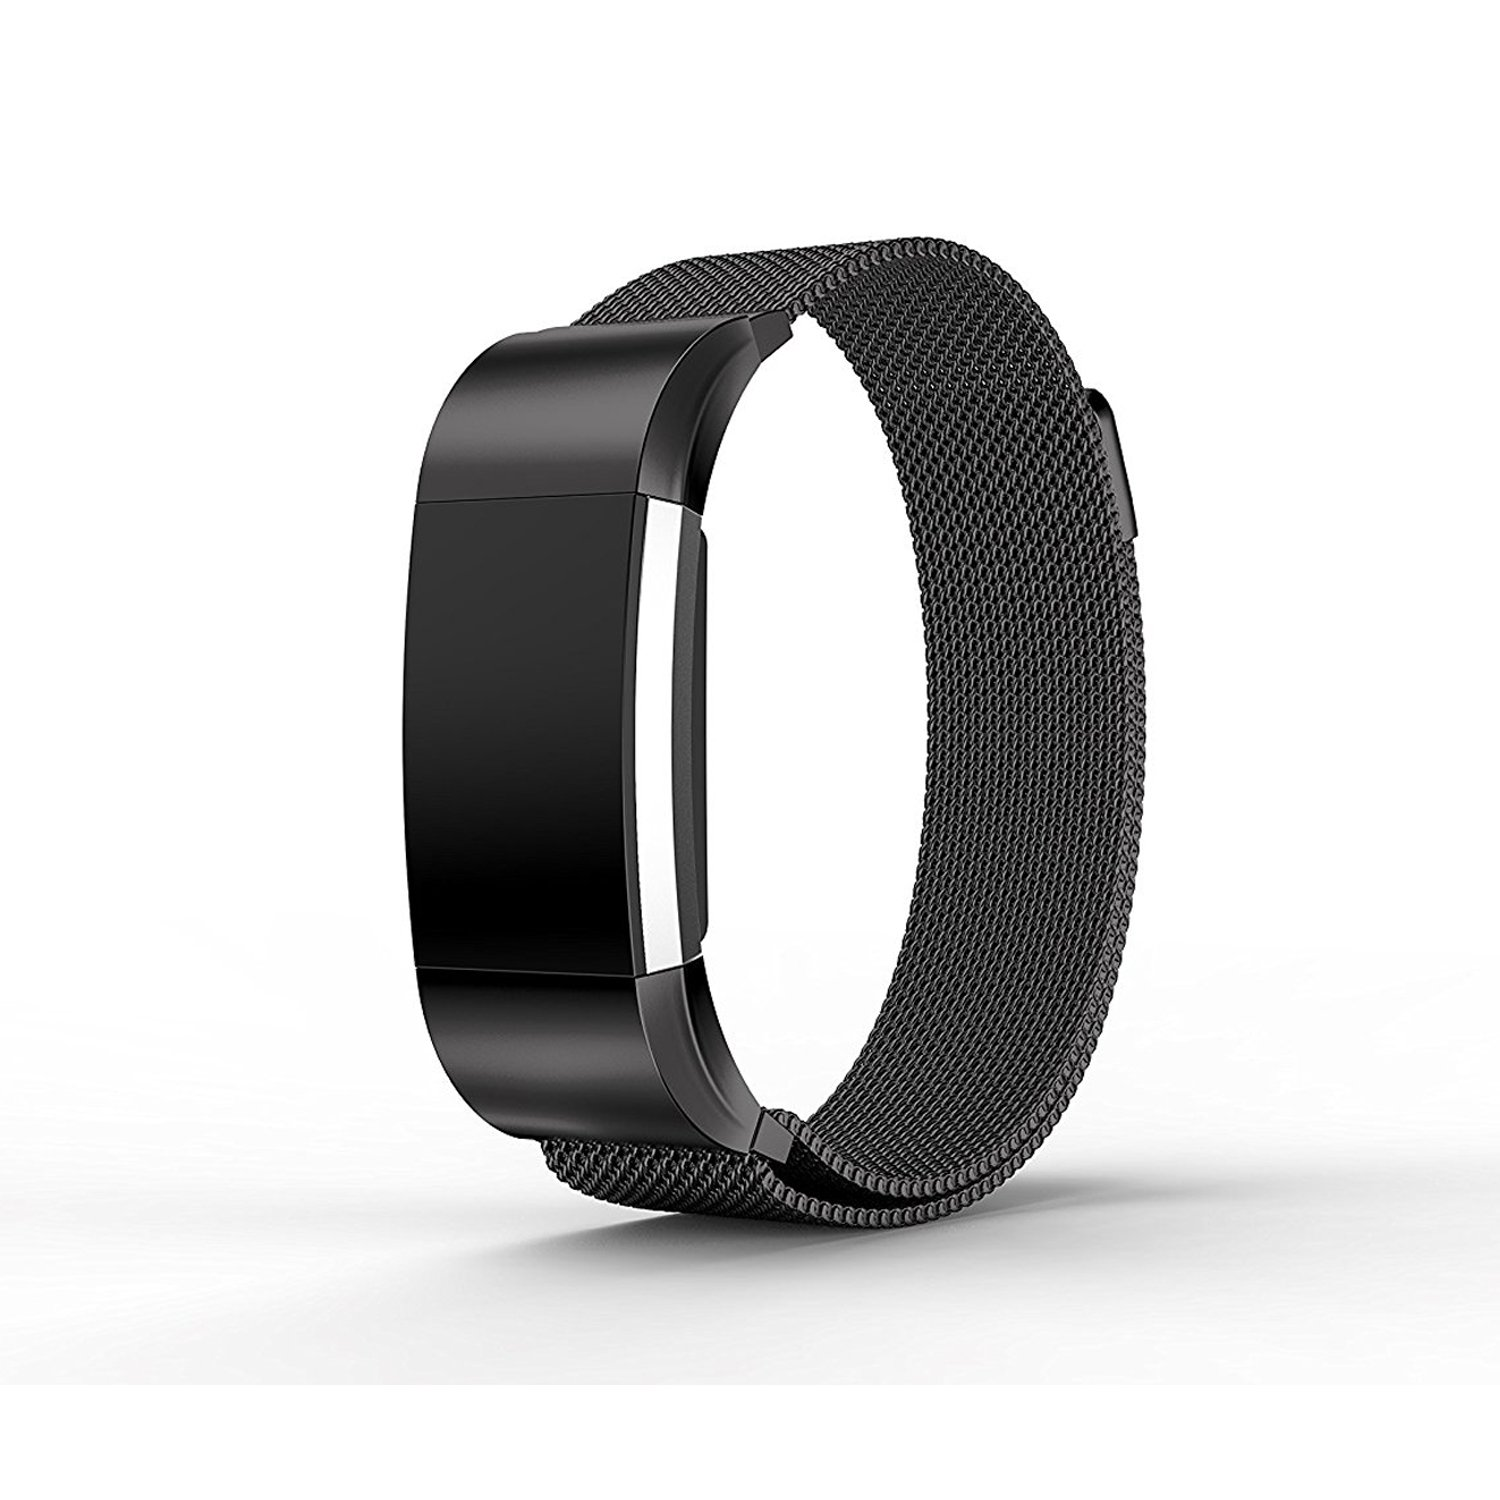 GUNMETAL BLACK Small New Wristband Bracelet Band Strap For FITBIT CHARGE 2 | eBay